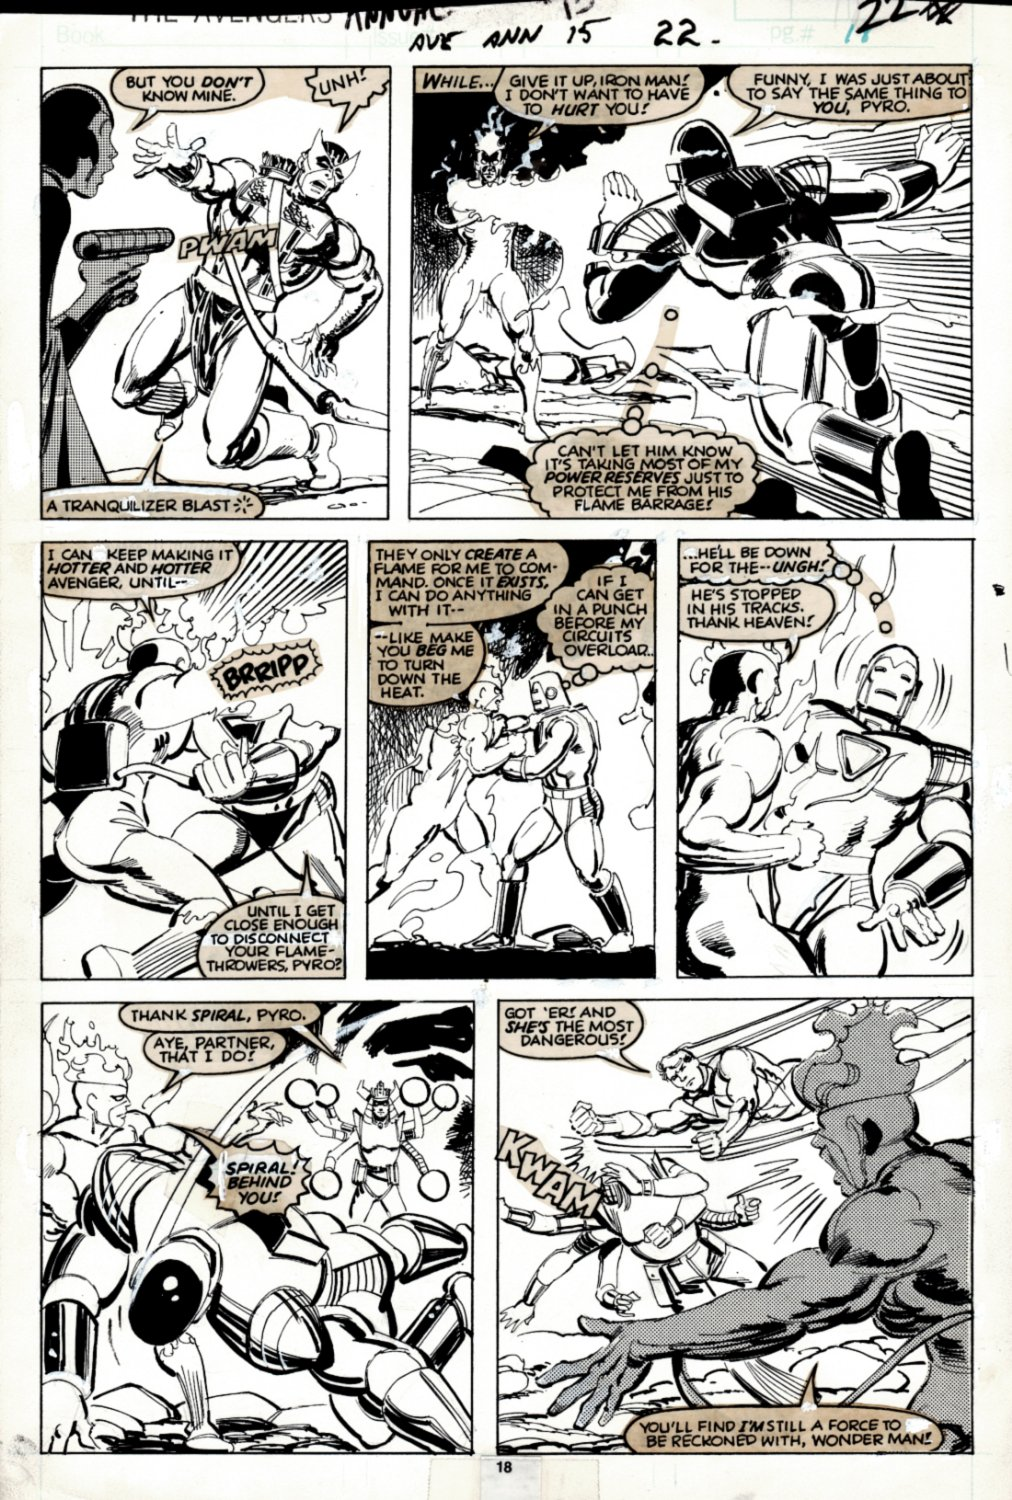 Avengers Annual #15 p 18 (SOLD LIVE ON 'DUELING DEALERS OF COMIC ART' EPISODE #37 PODCAST ON 9-22-2021(RE-WATCH THIS FUNNY ART SELLING SHOW HERE)